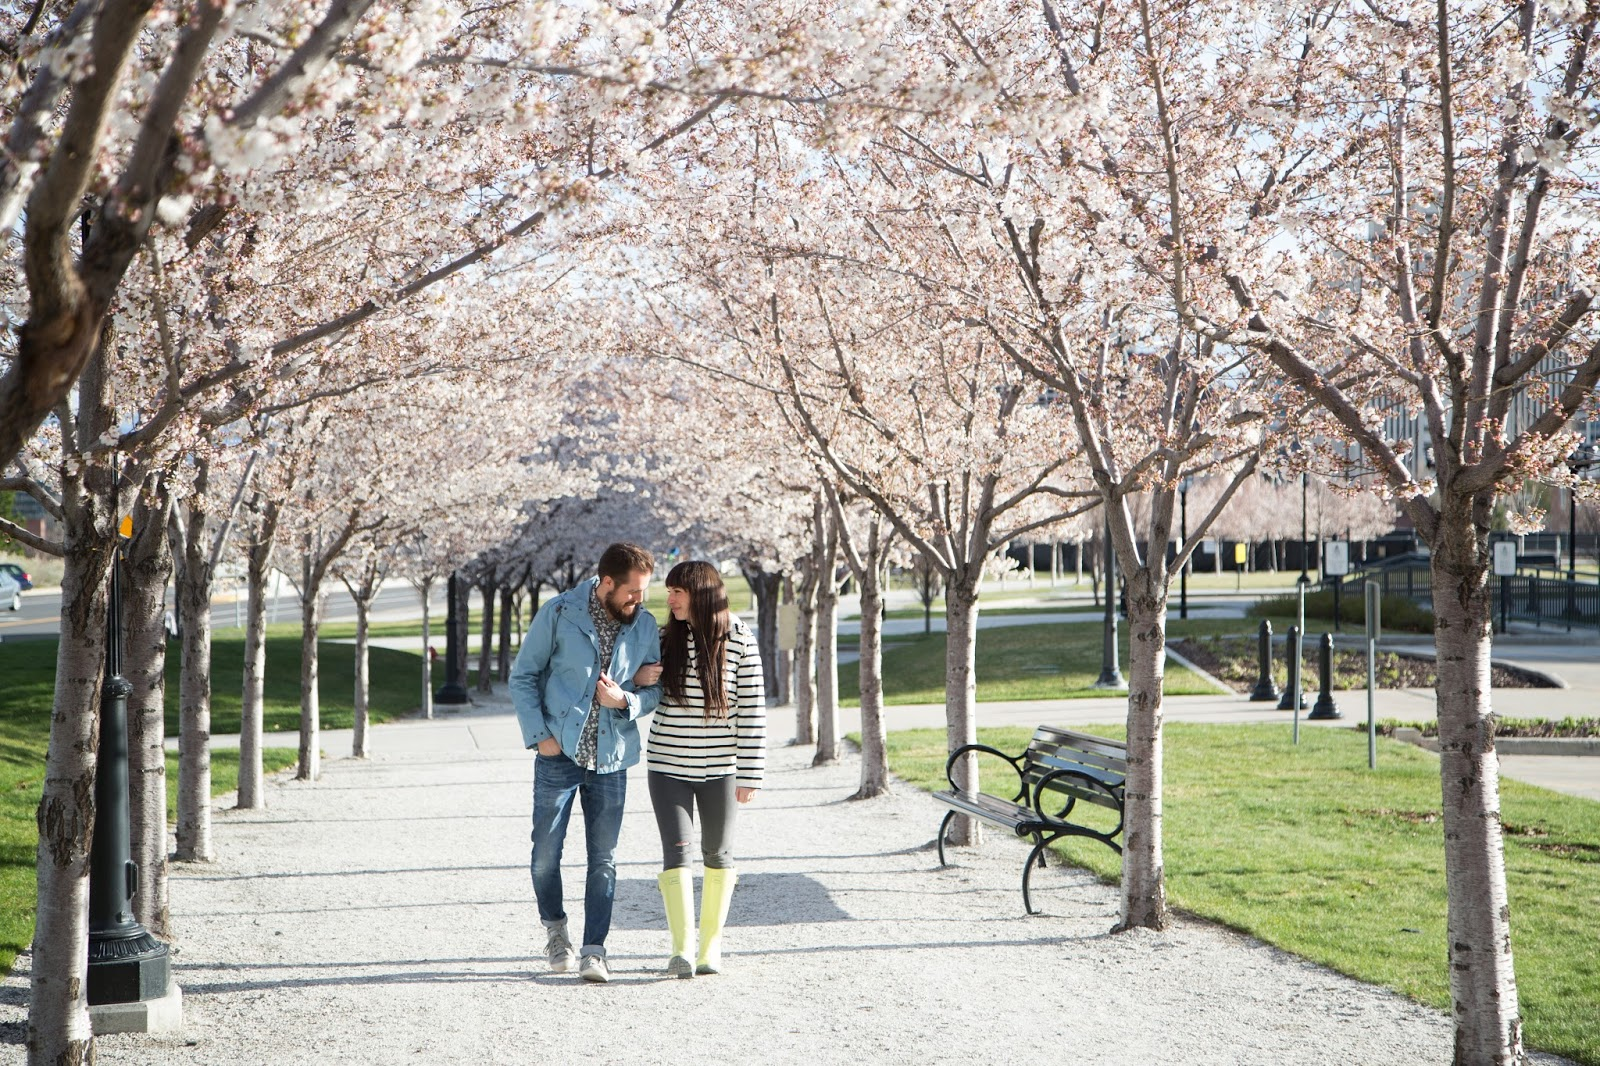 Couples Spring Style at the Utah State Capitol Blossoms